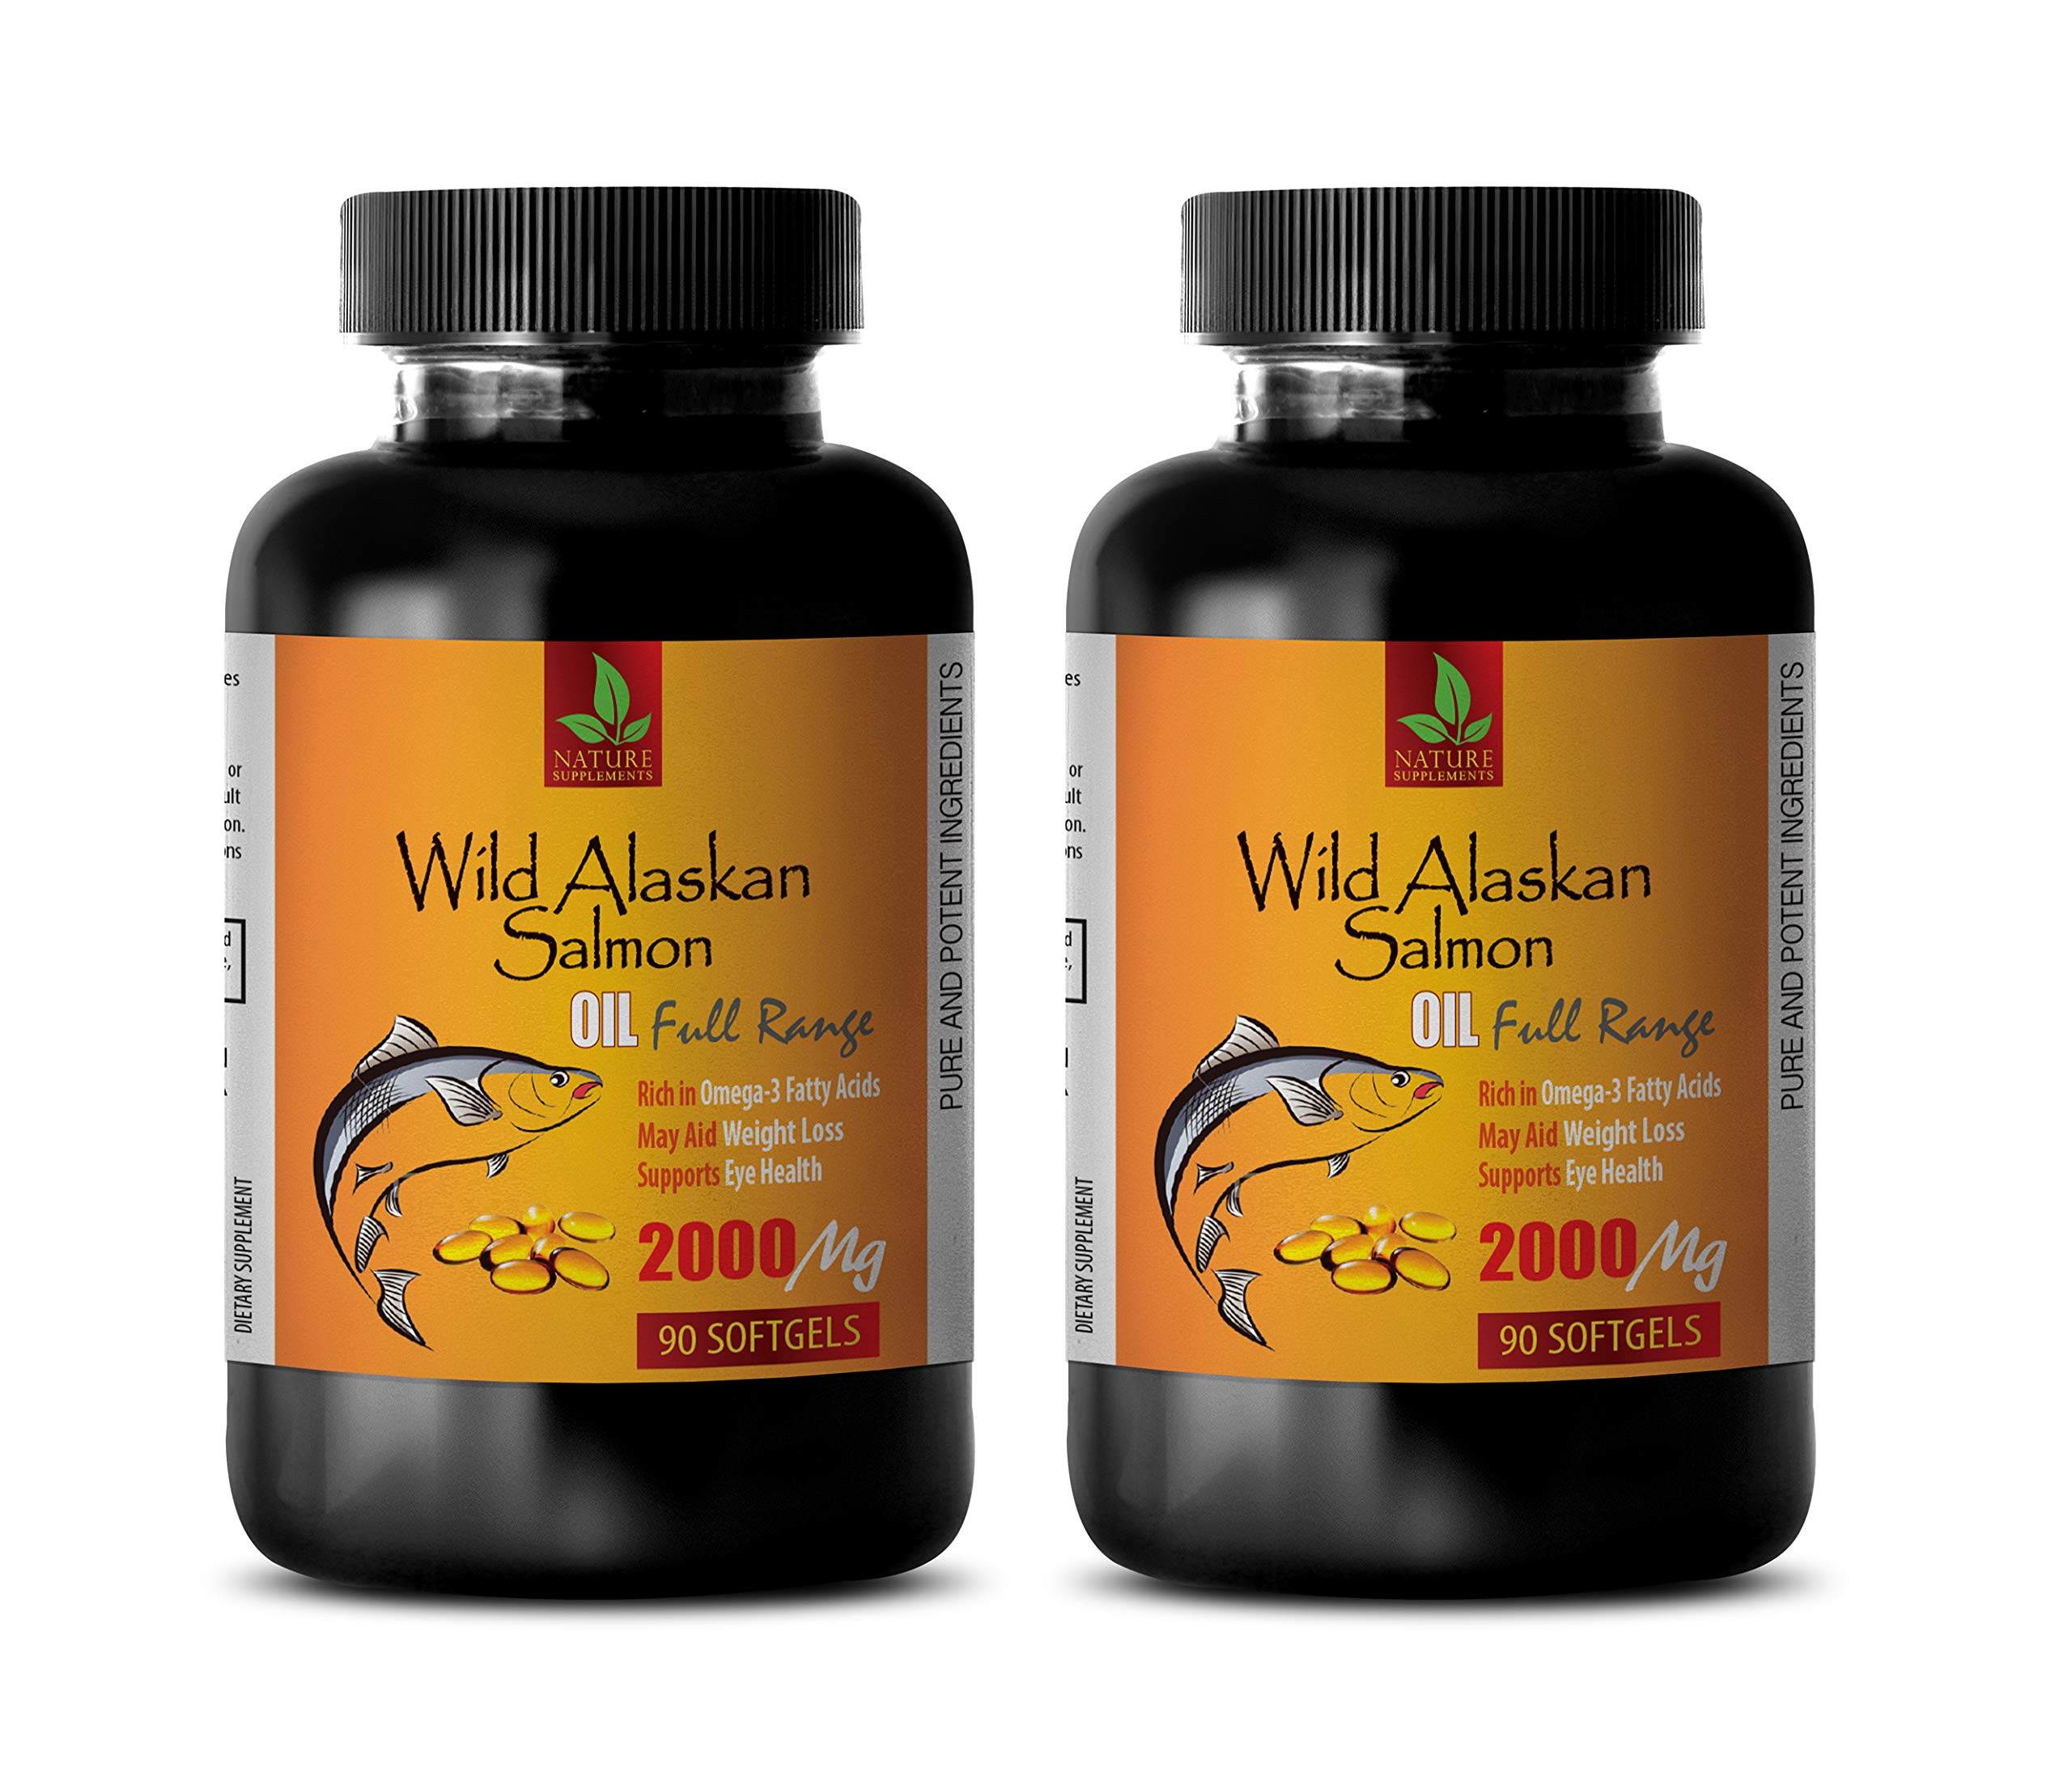 Brain Health Memory and Focus - Wild Alaskan Salmon Oil 2000 mg - Rich in Omega 3 Fatty ACIDS - Fish Oil Omega 3 Supplement - 2 Bottles 180 Softgels by NATURE SUPPLEMENTS